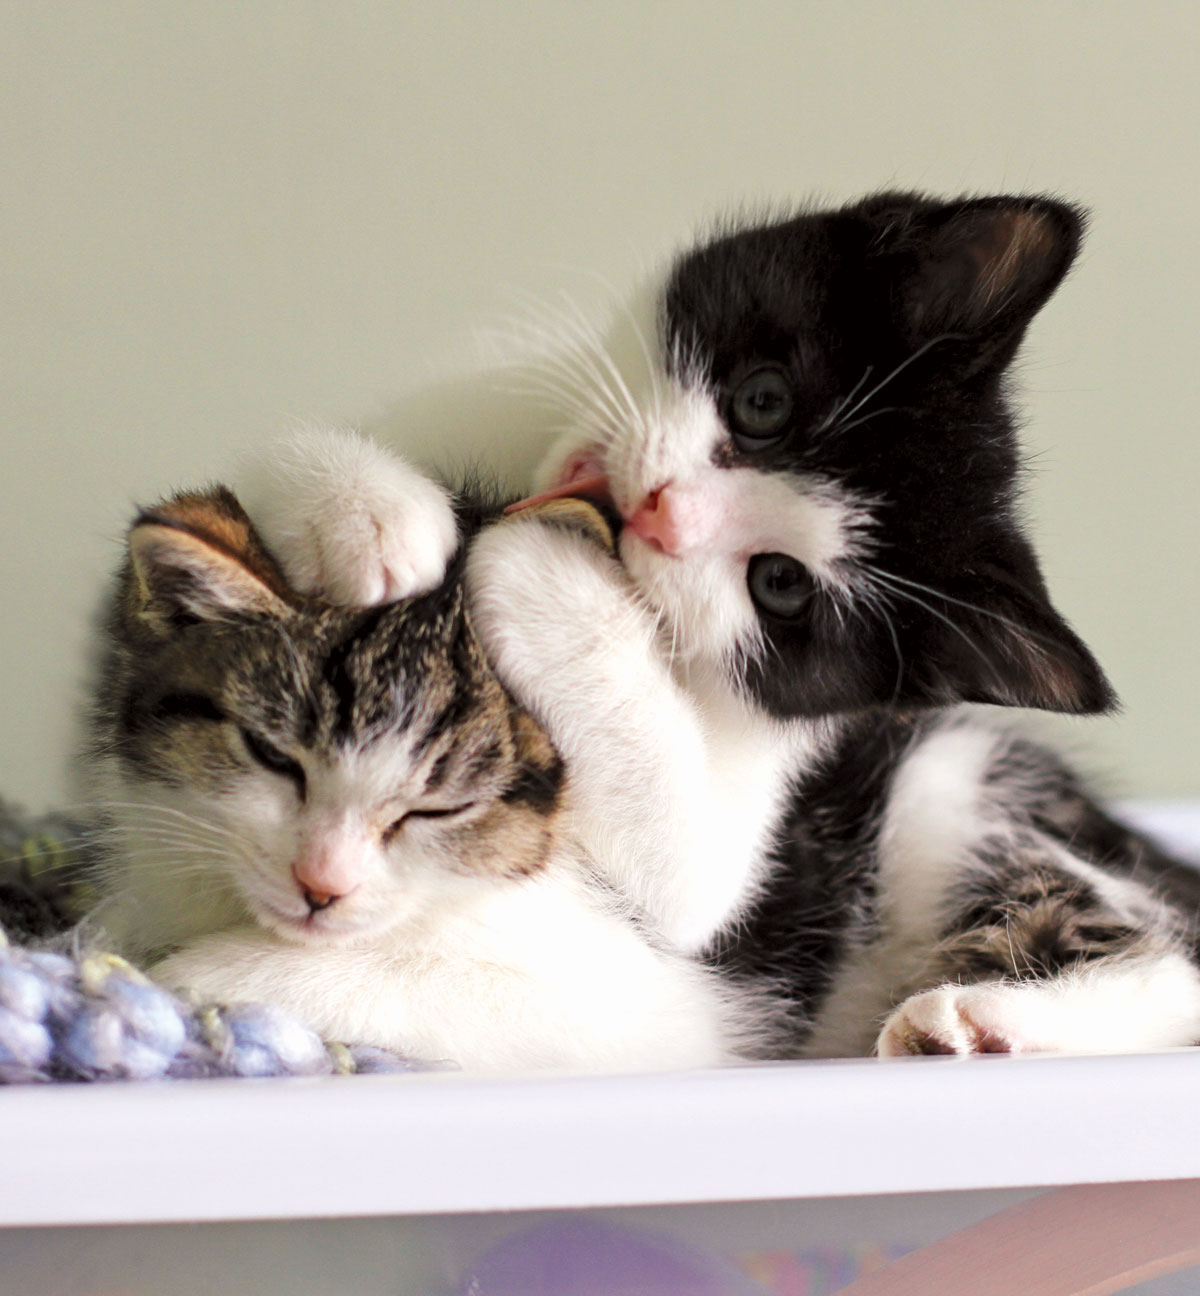 Good PR: Rescue Cats Find a Home on Social Media - Modern Cat